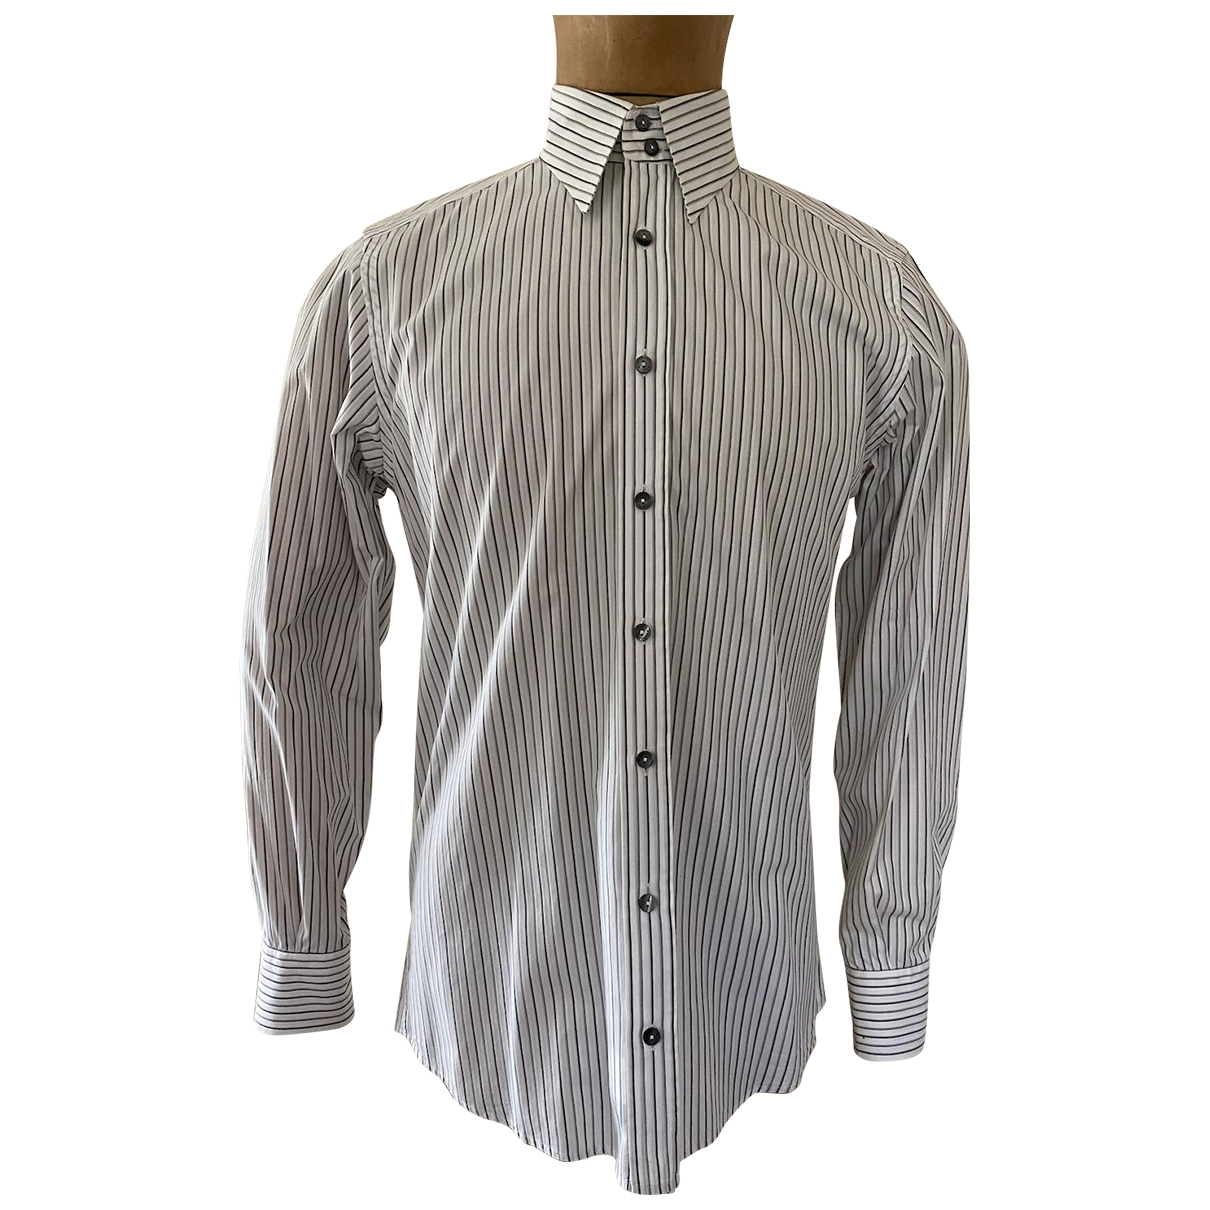 Gucci \N White Cotton Shirts for Men 15.5 UK - US (tour de cou / collar)